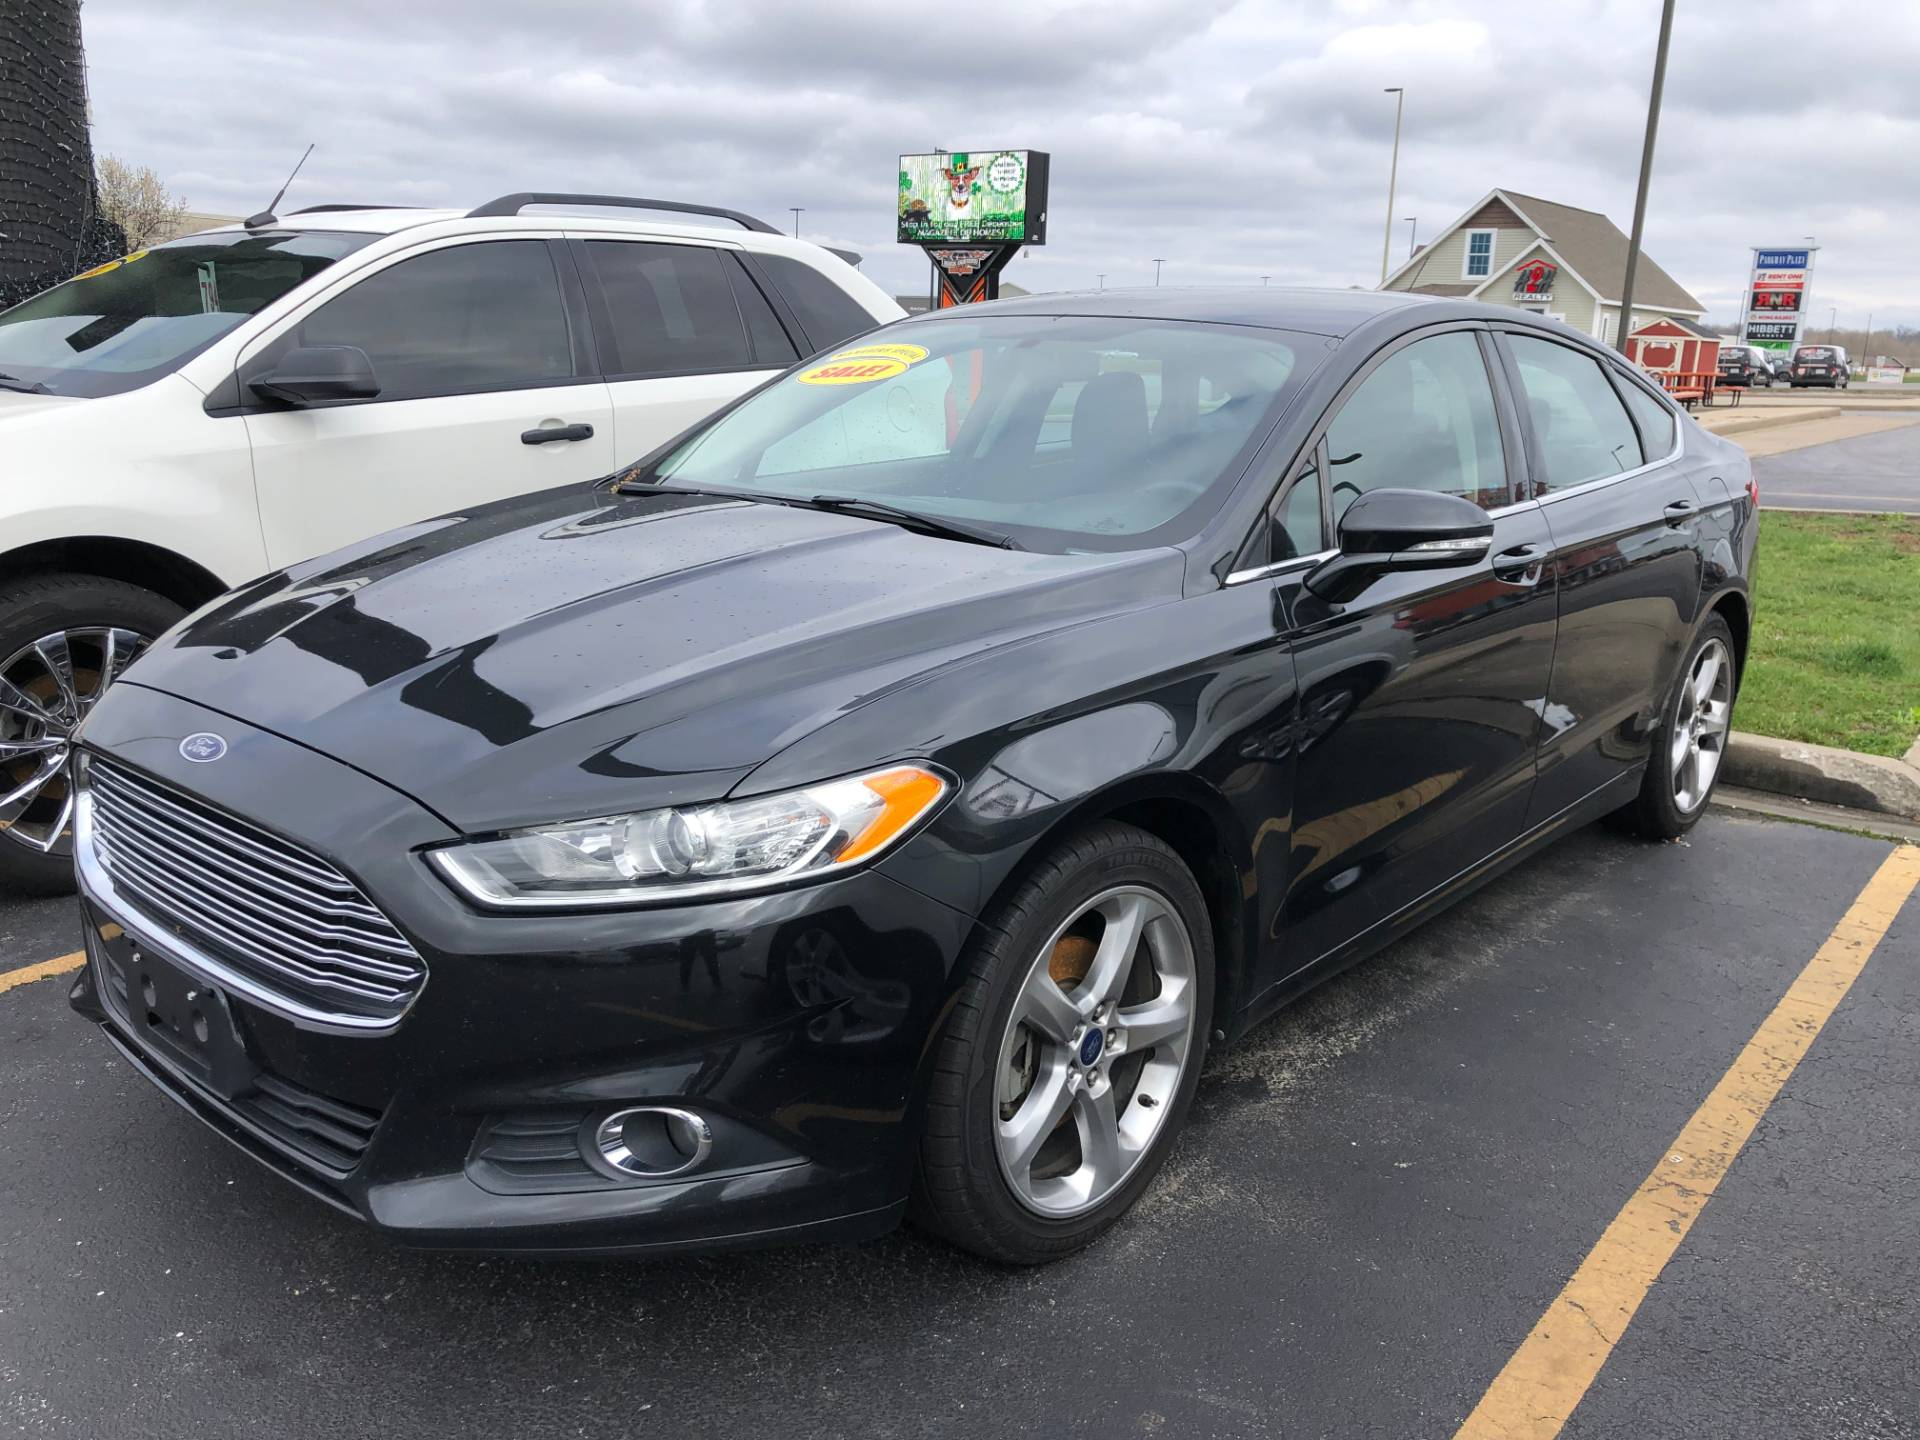 2014 Ford Fusion in Marion, Illinois - Photo 1